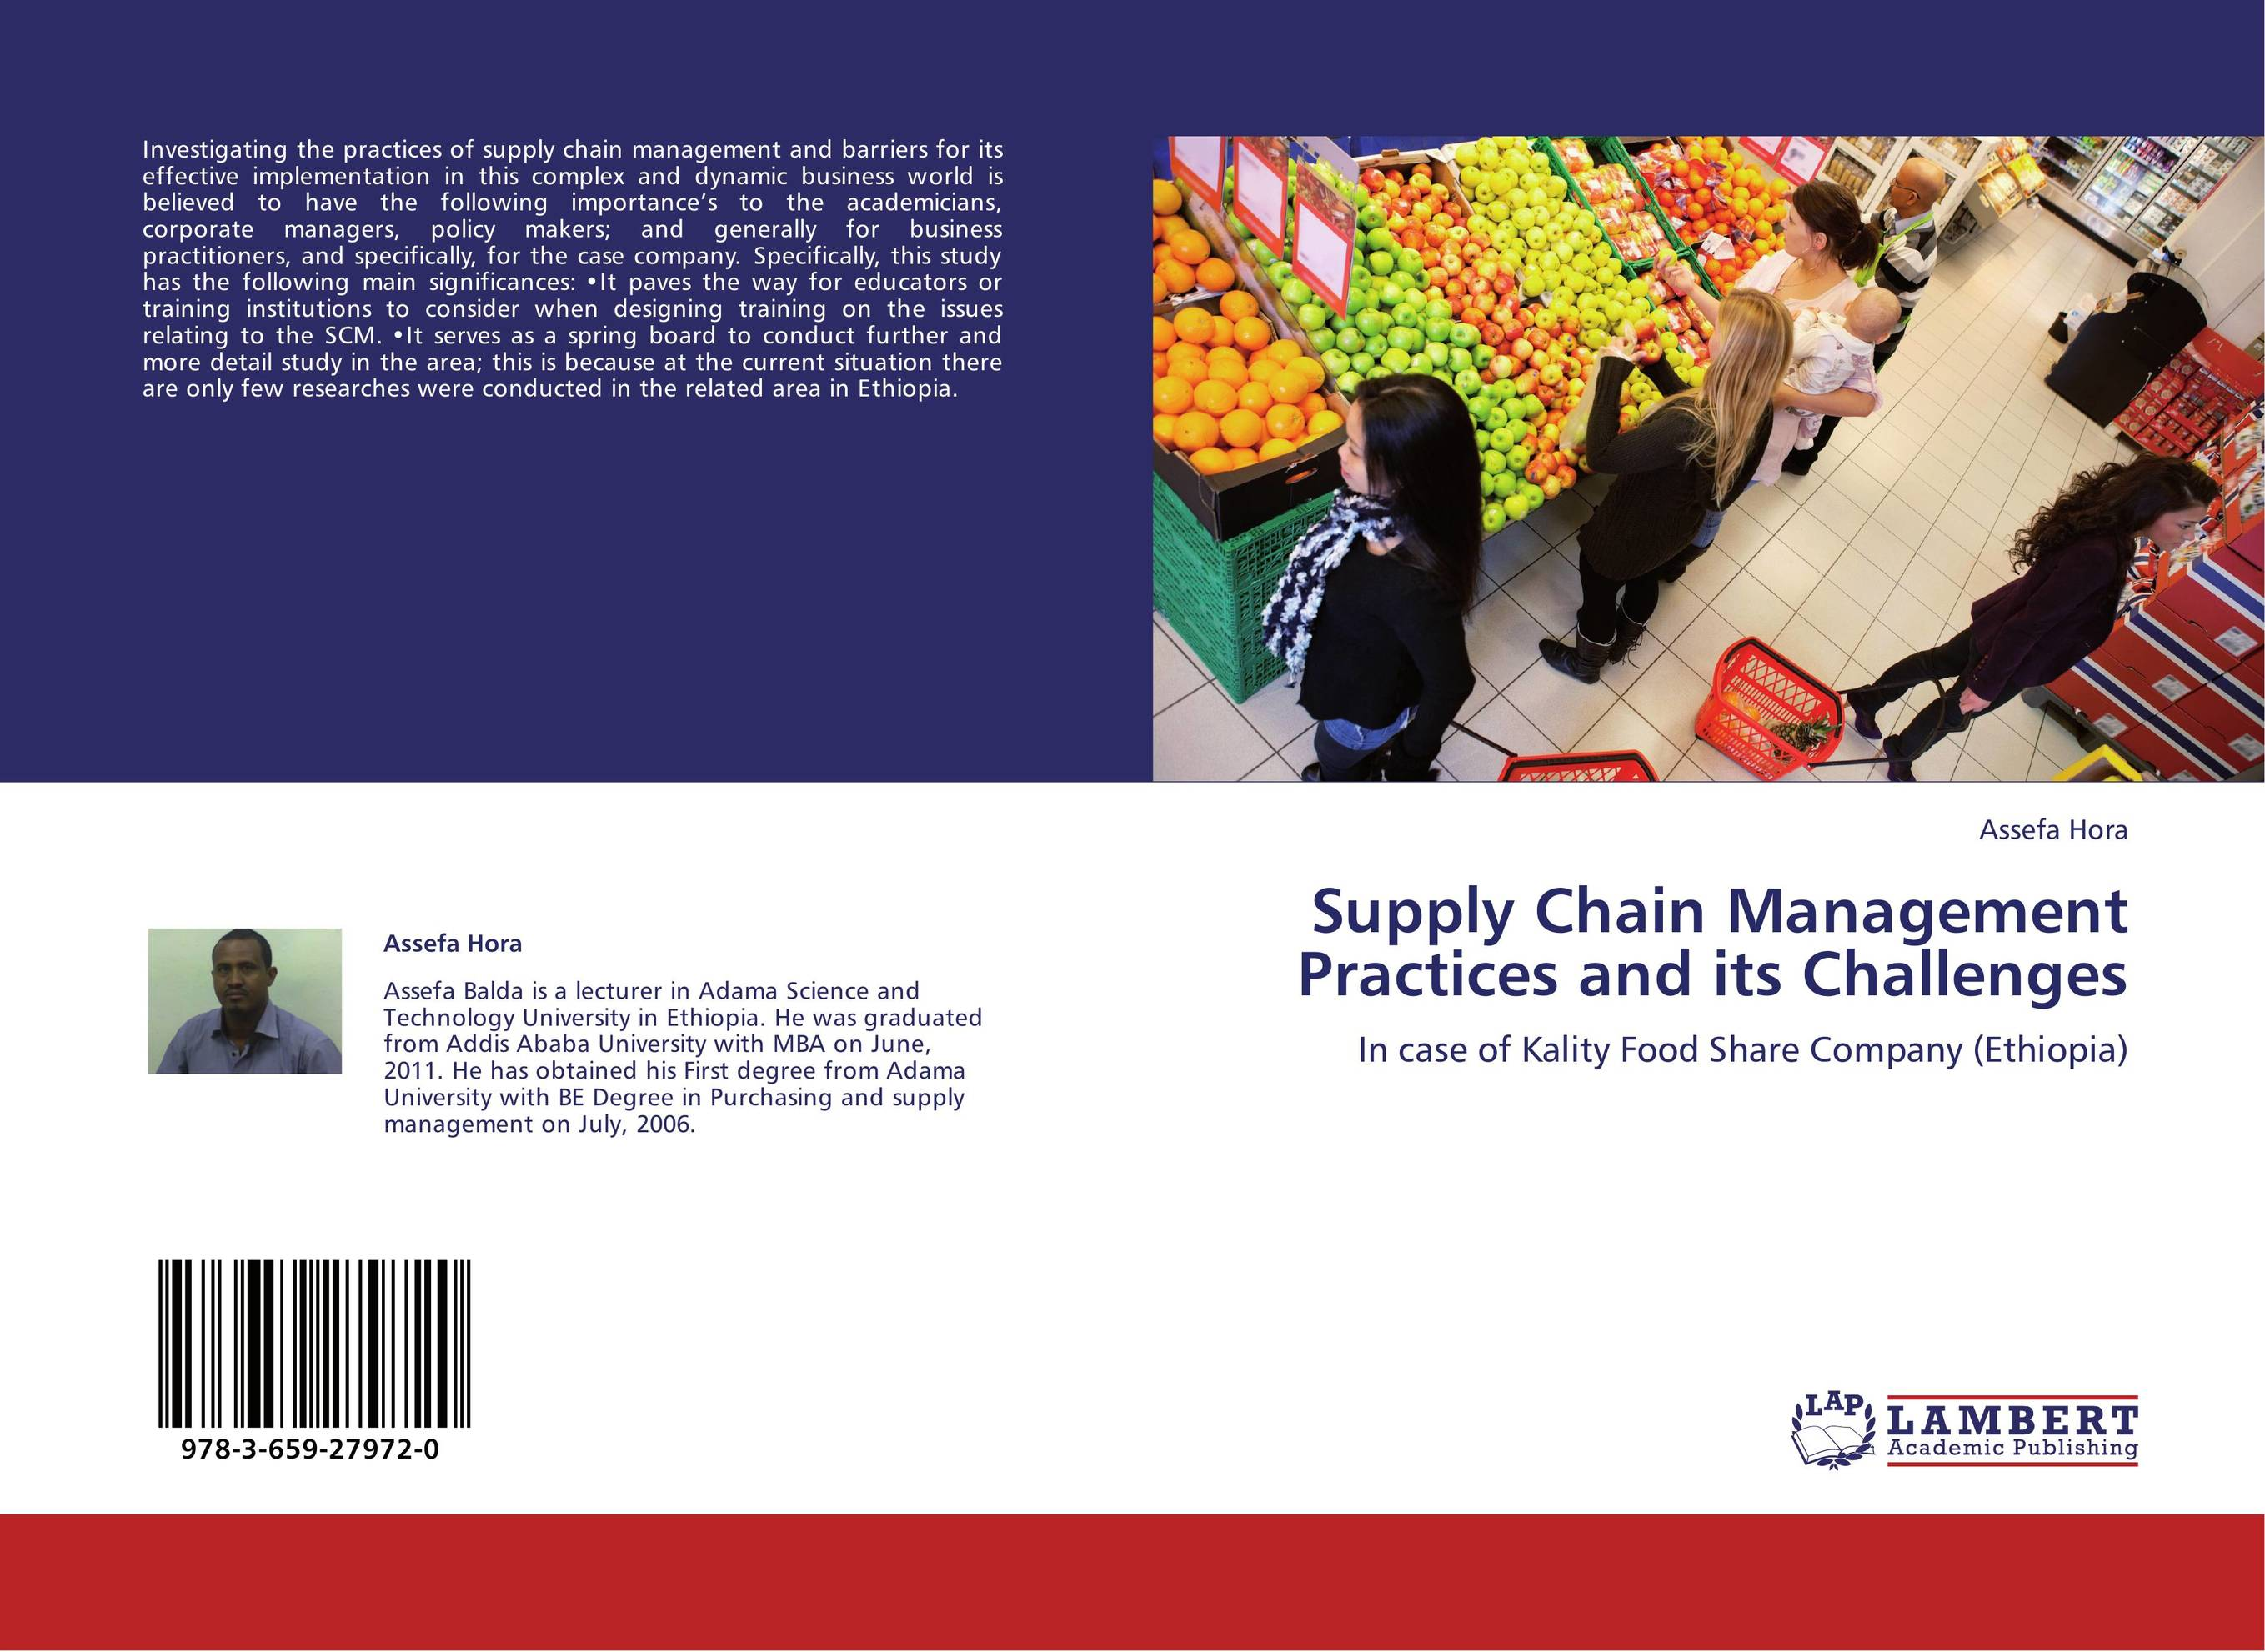 supply chain management paradigm and its Supply chain management is the paradigm that is changing business and business relationships it reflects the realization that the product pipeline for a business extends from the vendor right through to delivery to the customer.